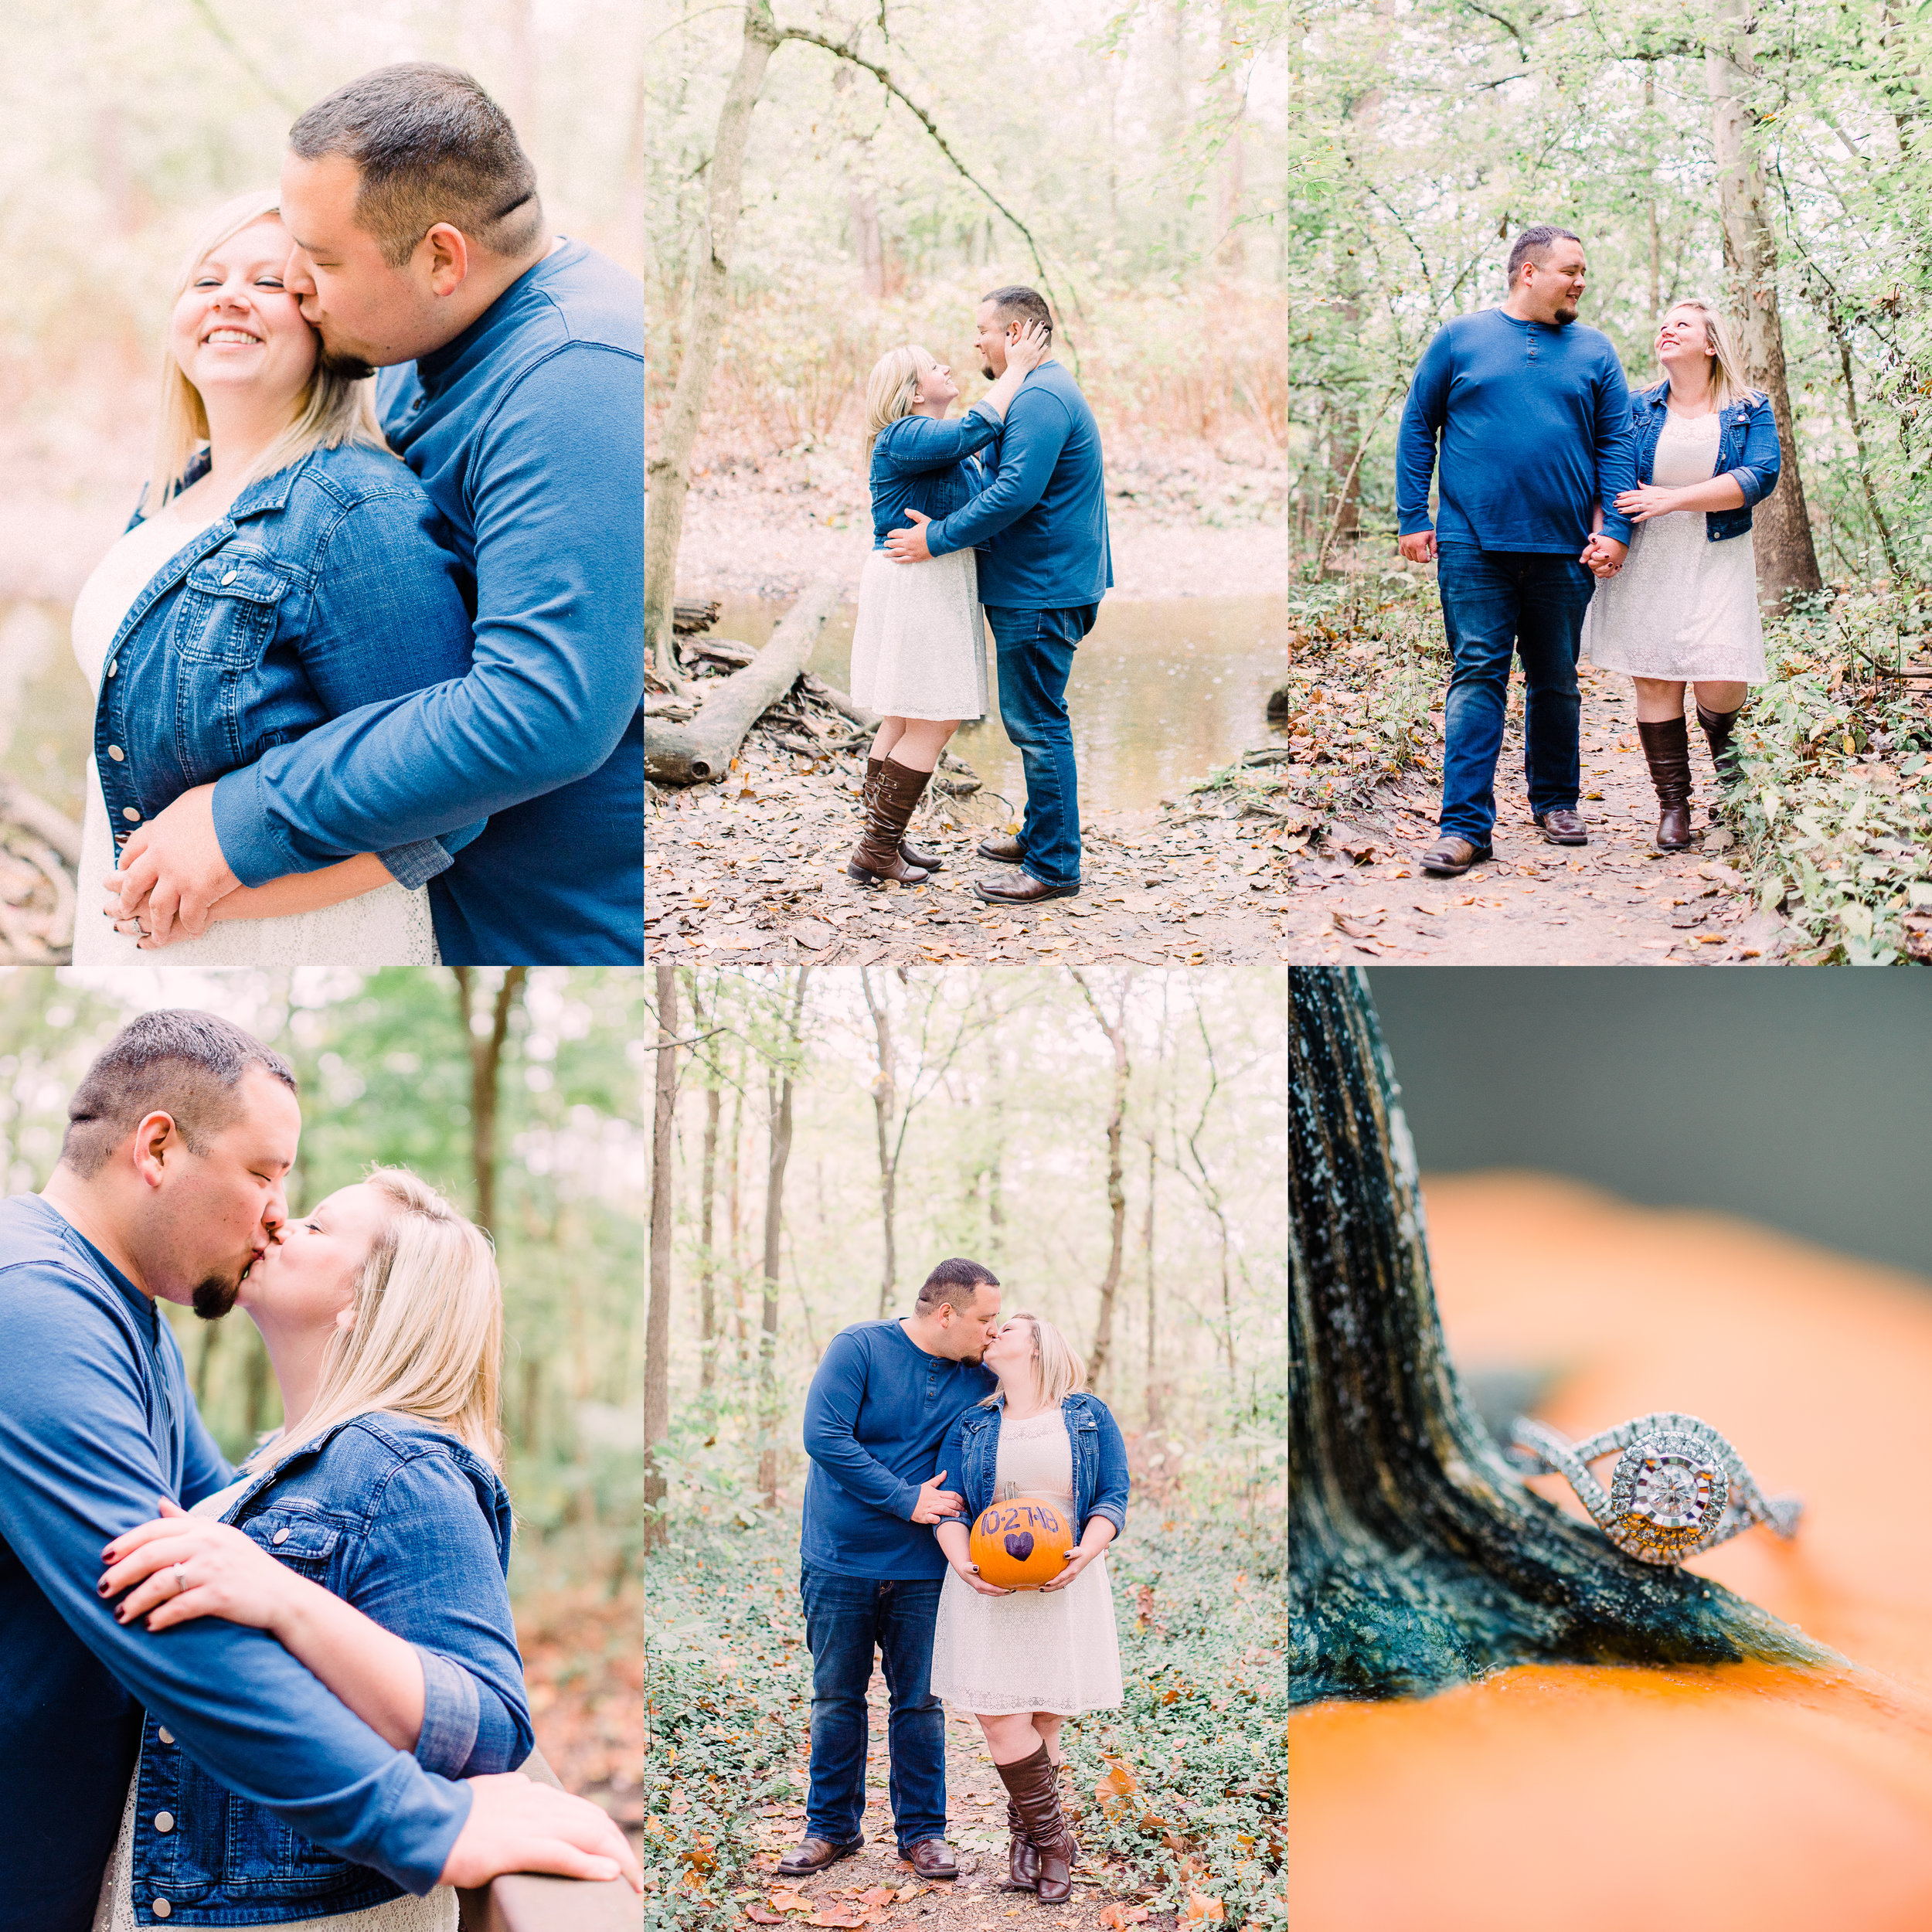 Fall Engagement Session with Pumpkins | Katerina Marie | Fine Art Indianapolis Destination Wedding Photographer